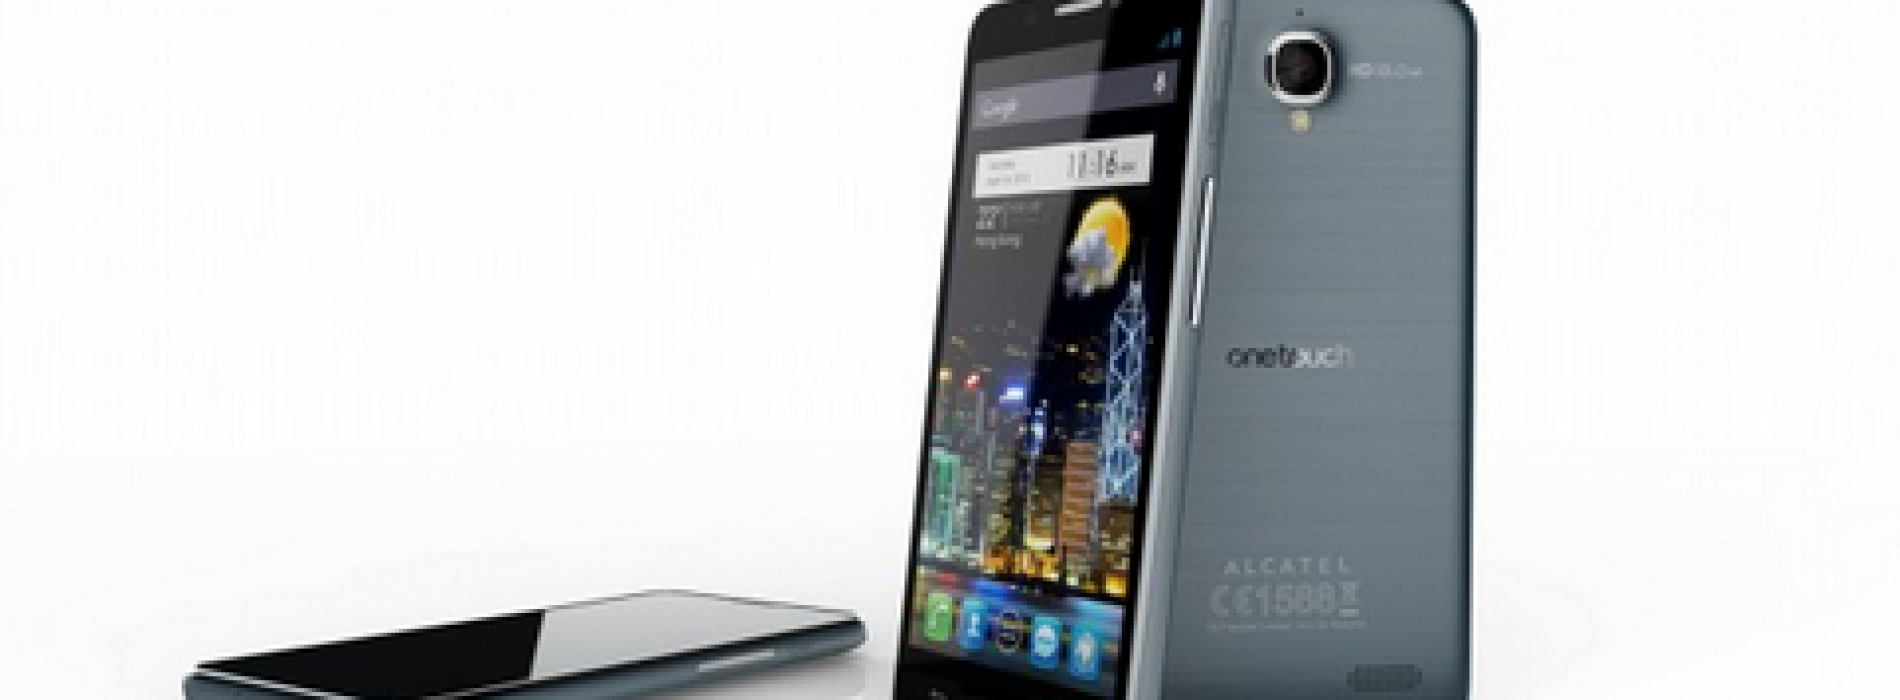 Alcatel announces 3 new Android phones: Idol, Idol Ultra, and Scribe HD